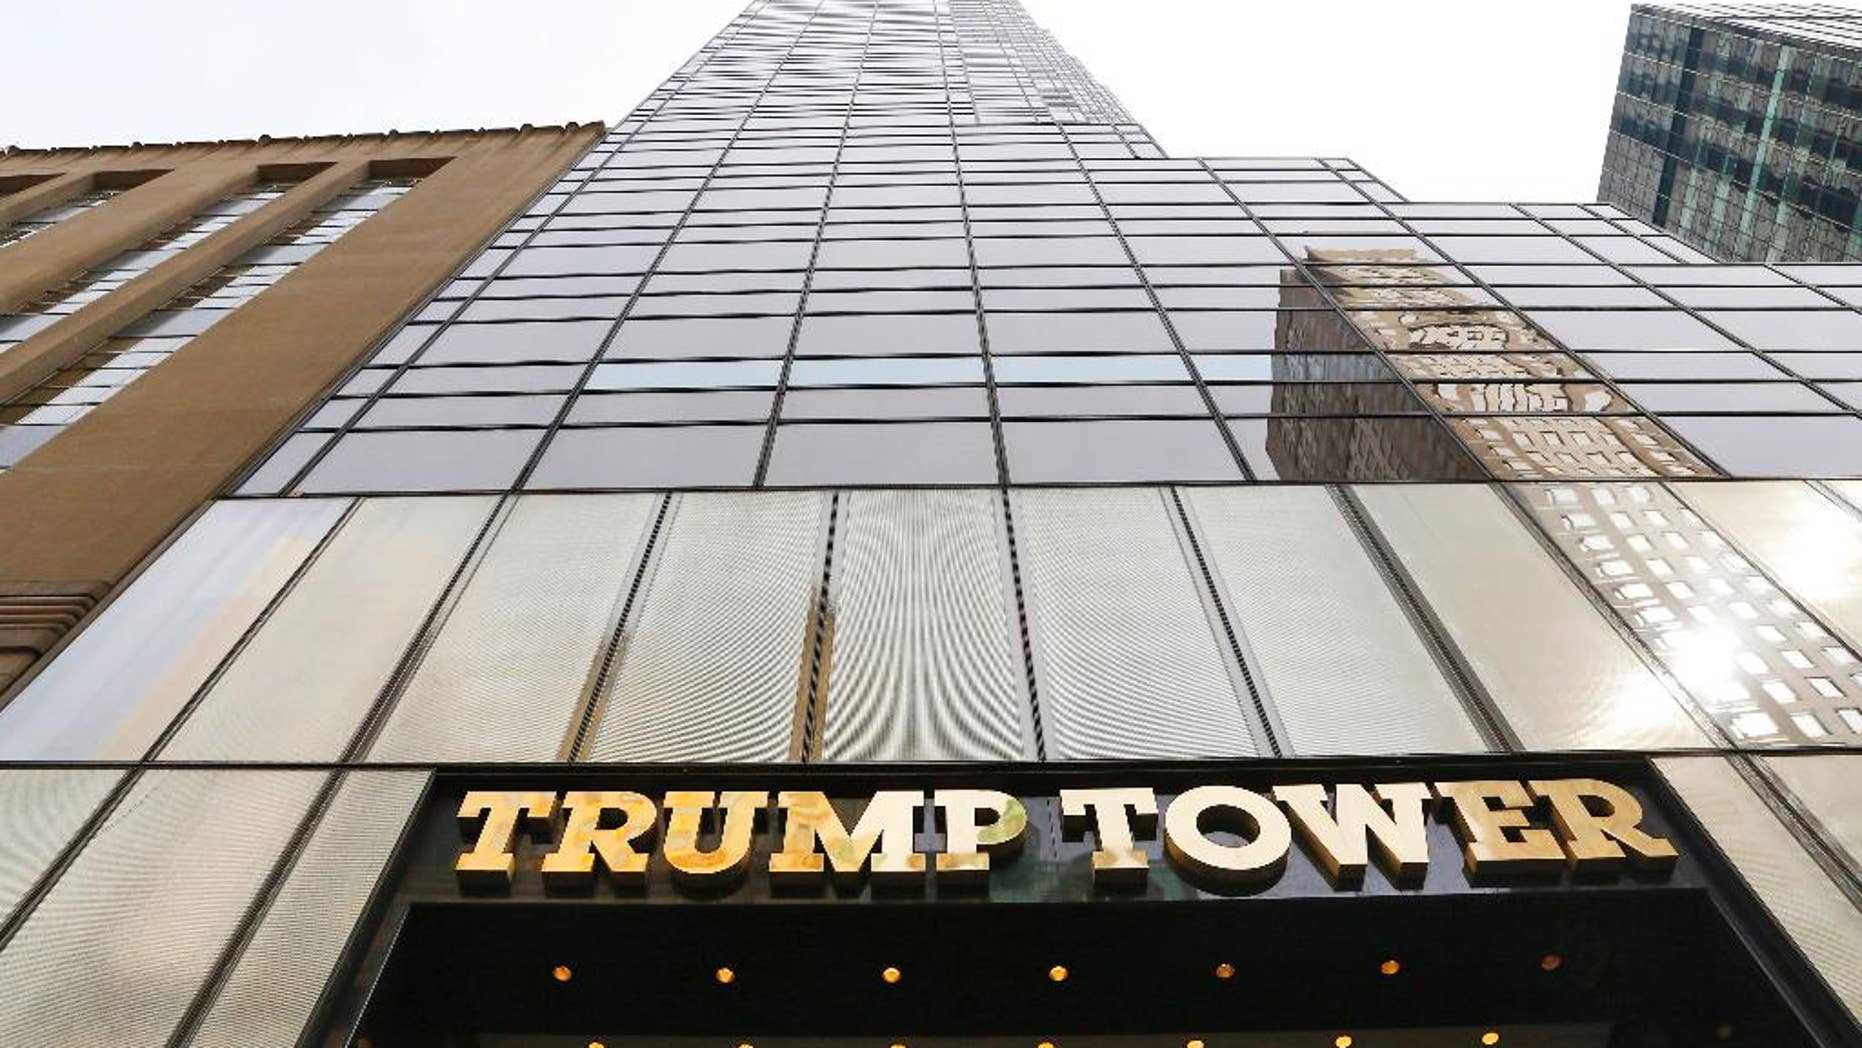 FILE - In this March 16, 2016 file photo, Trump Tower is seen in New York. The U.S. military is looking to rent space at Trump Tower for use when President Donald Trump returns to his longtime home in New York City. (AP Photo/Mark Lennihan, File)